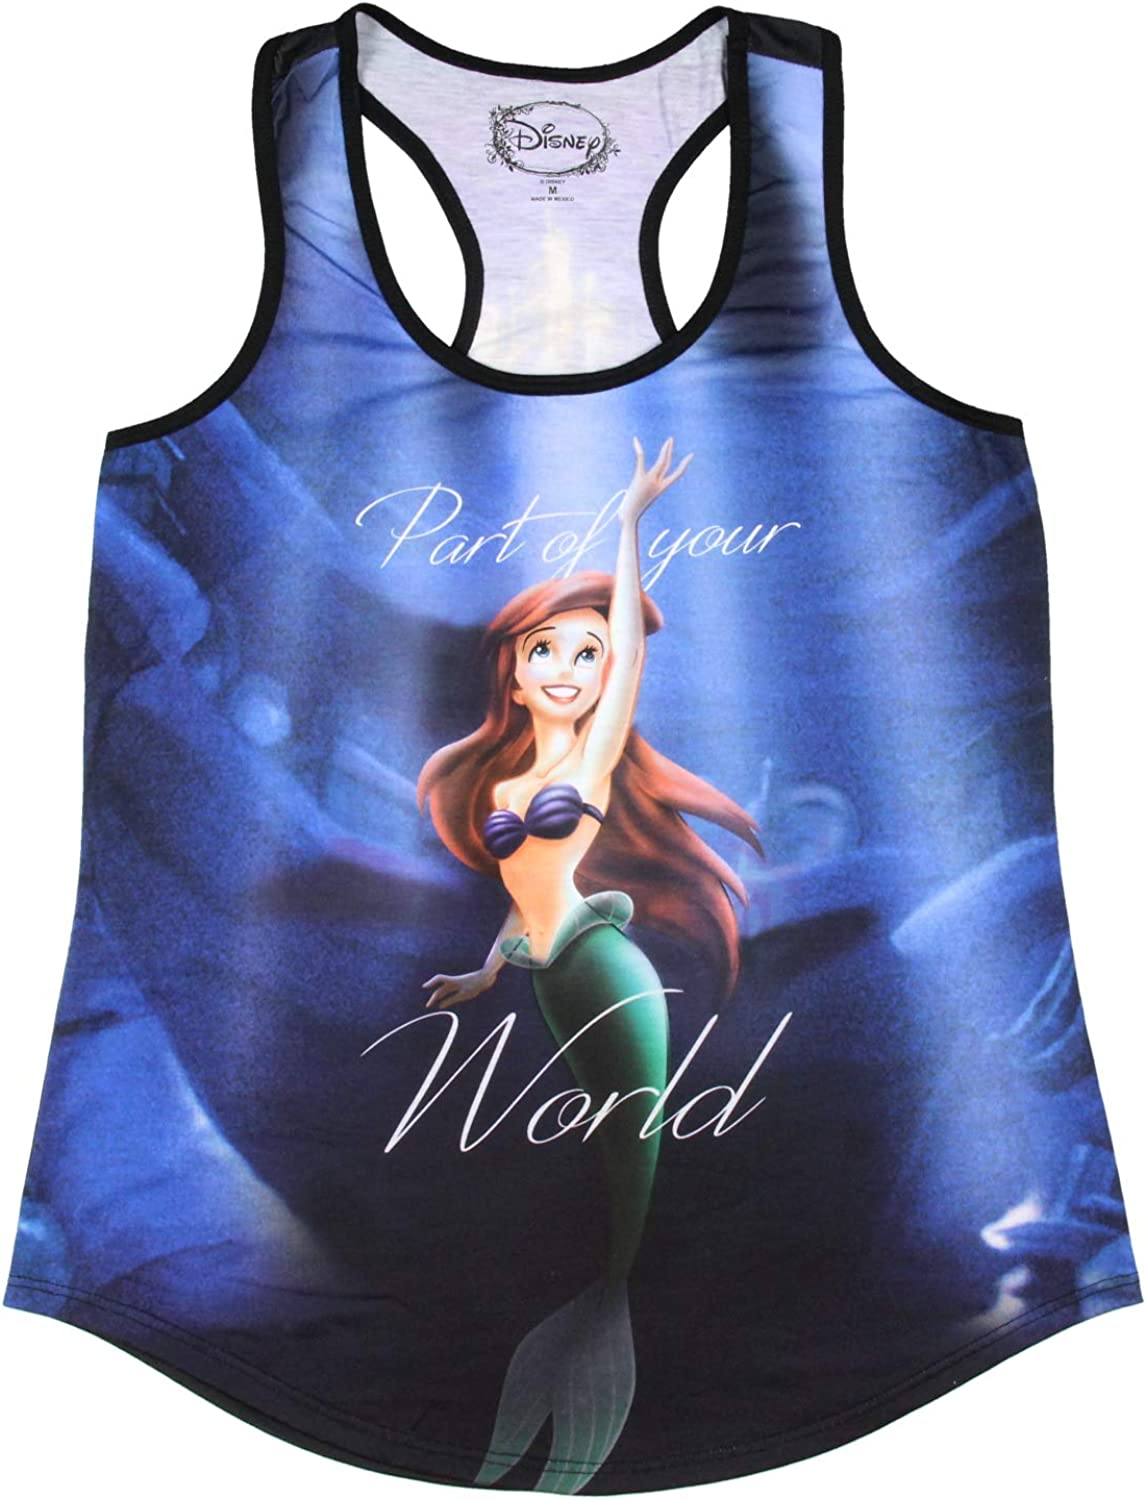 Disney The Little Mermaid Ariel Tank Sublimation Ursula SEAL limited product Girls OFFer